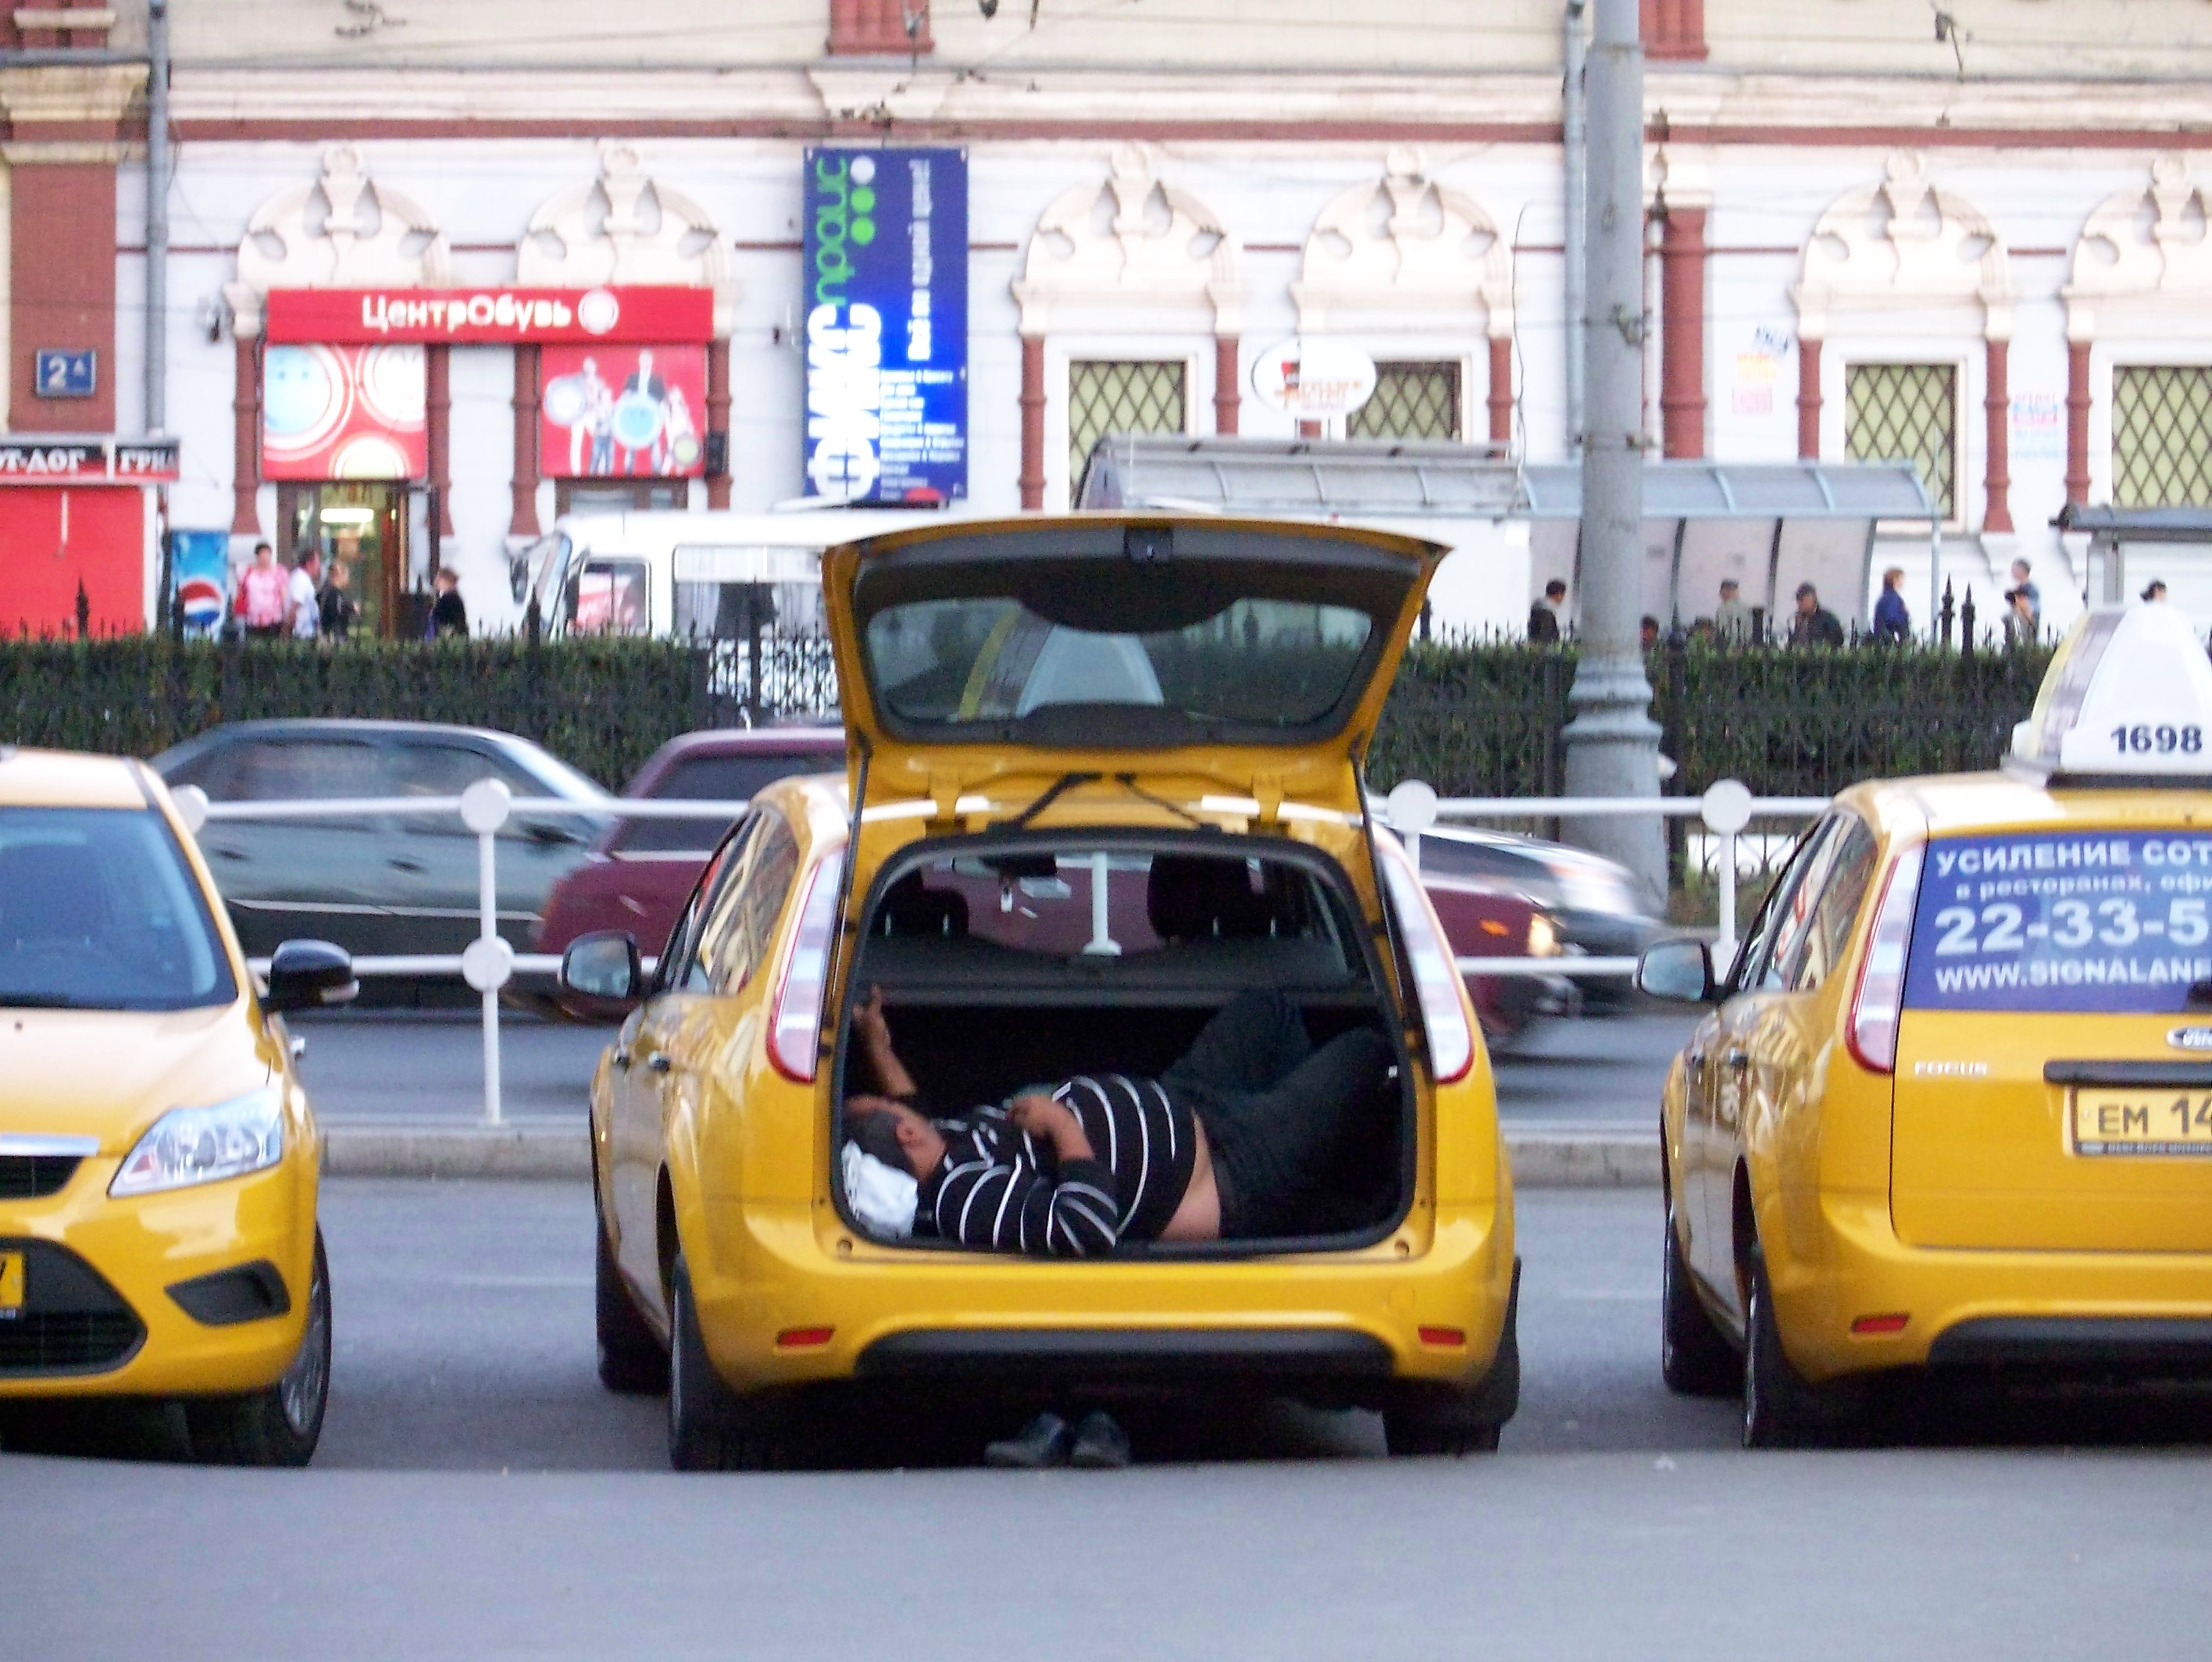 Russian Taxi in Moscow